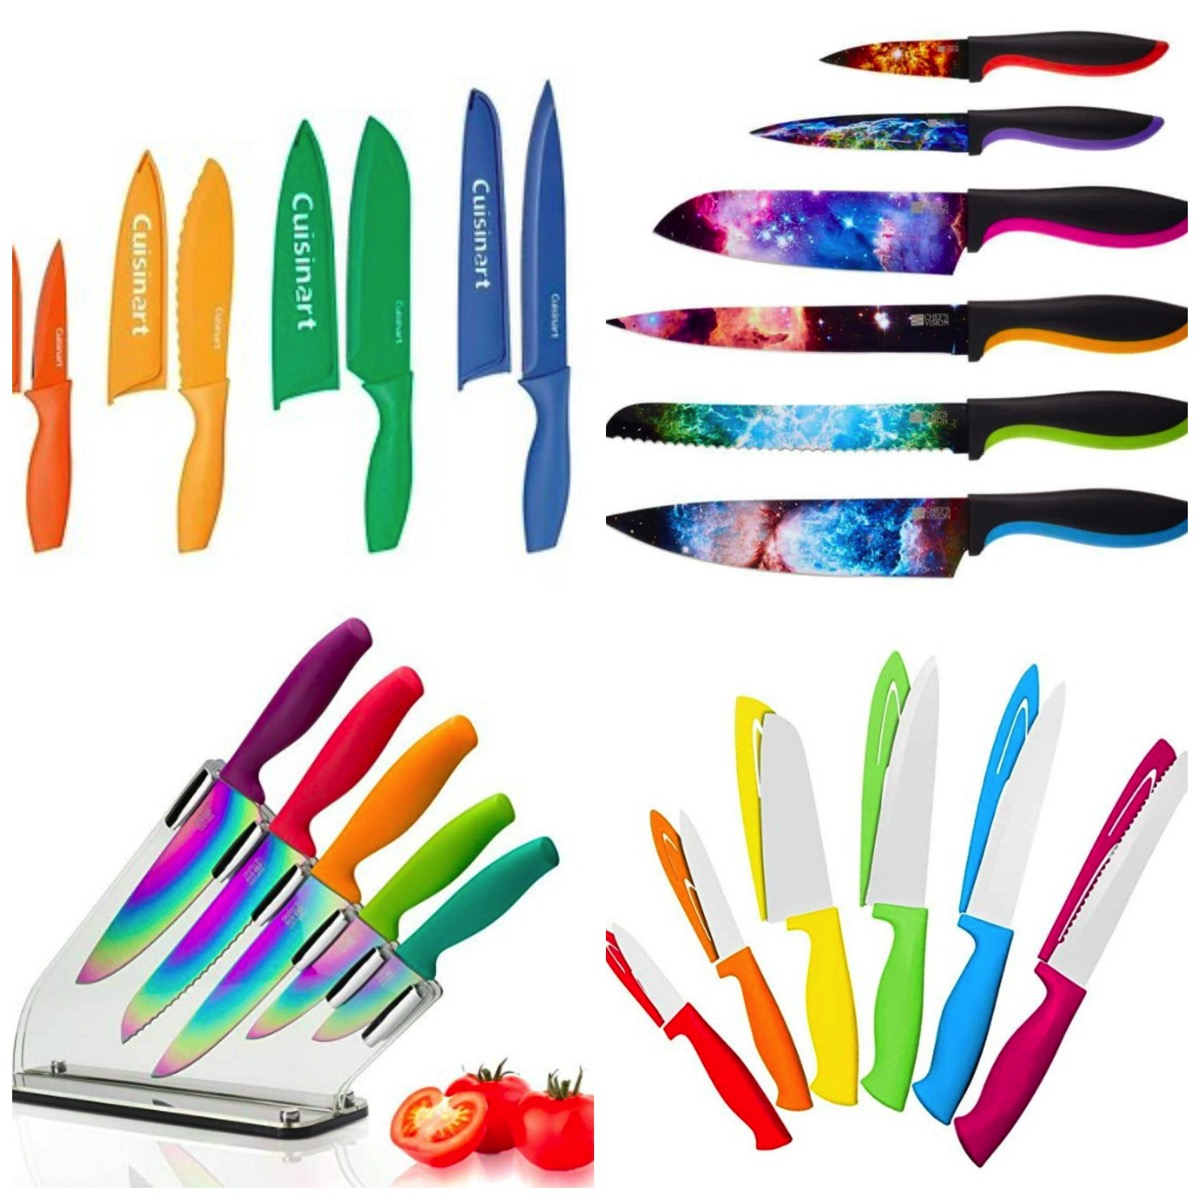 Colorful and unique knife sets for your home kitchen